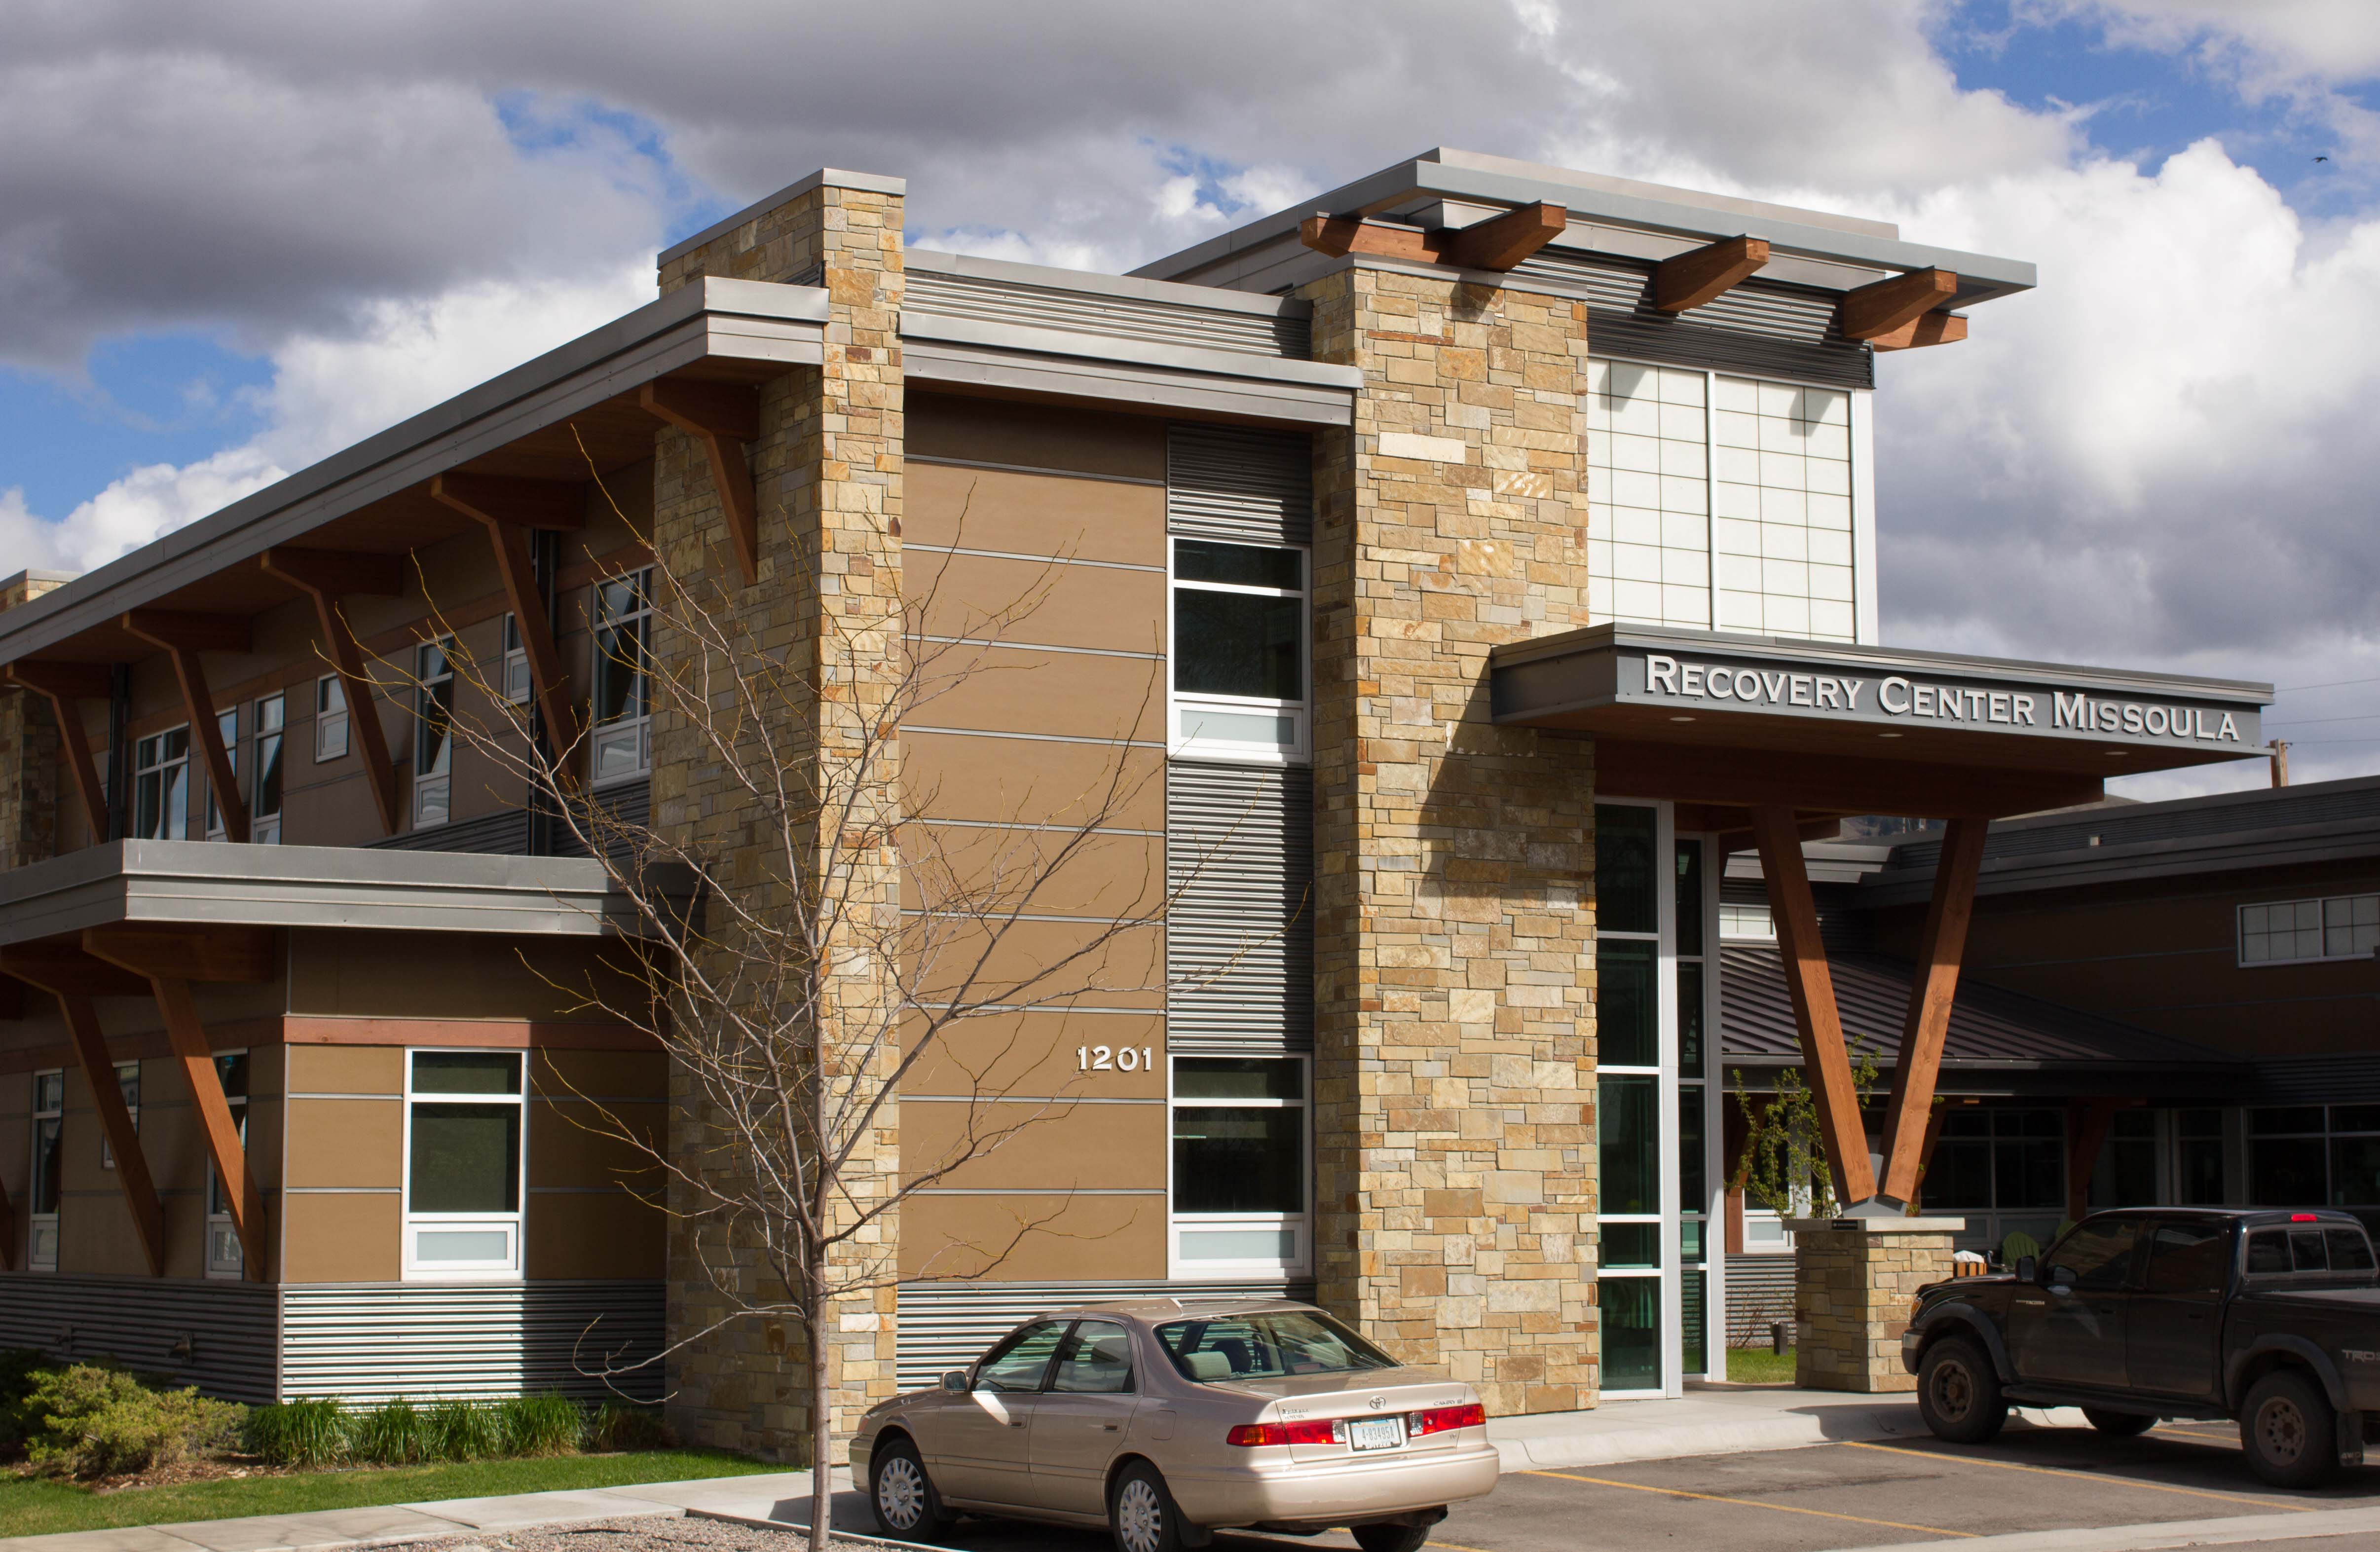 0Missoula Recovery Center